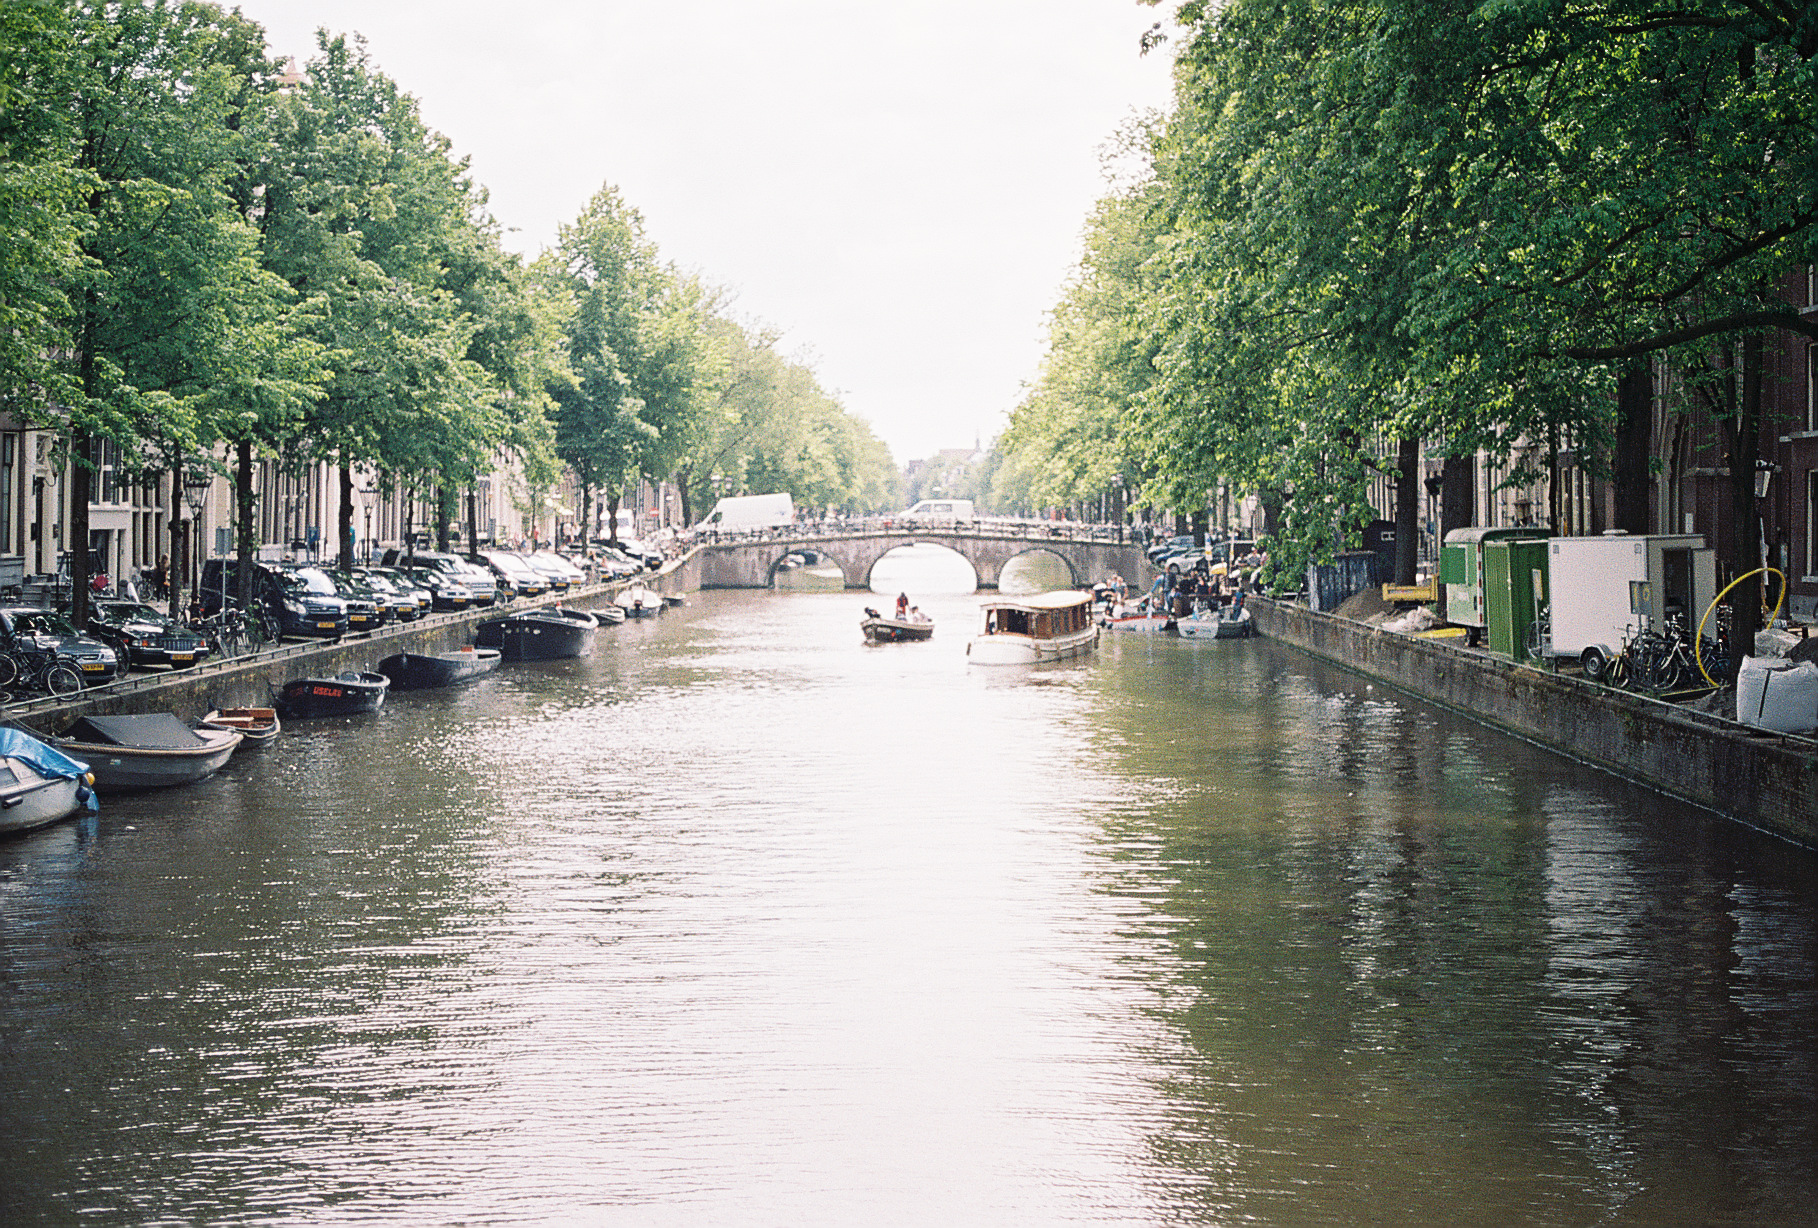 amsterdam-canal-netherlands-european-honeymoon-35mm-film-portra-400